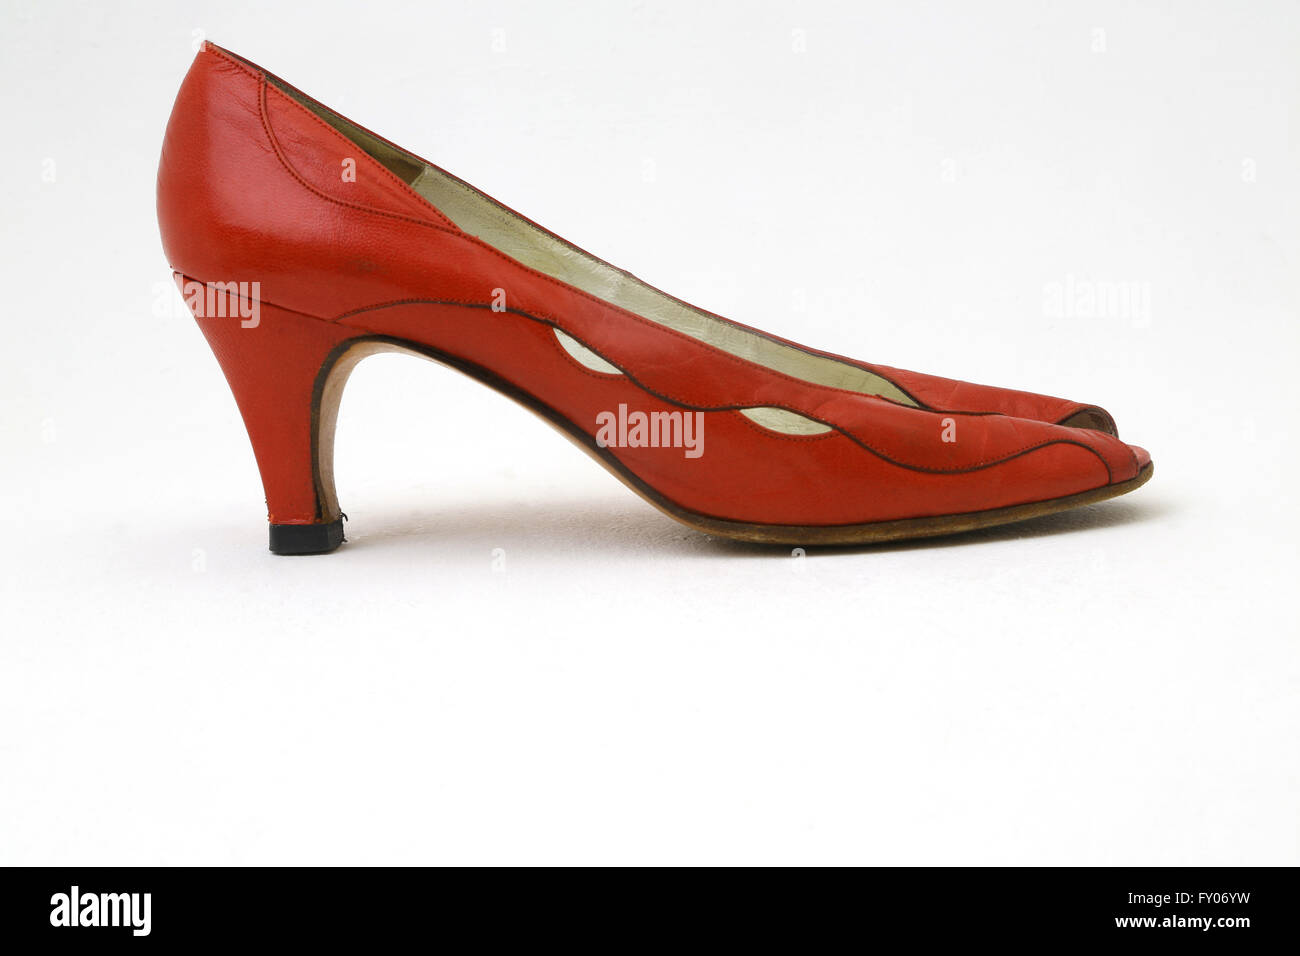 Red Leather Bally Peep Toe Shoe With Kitten Heel - Stock Image